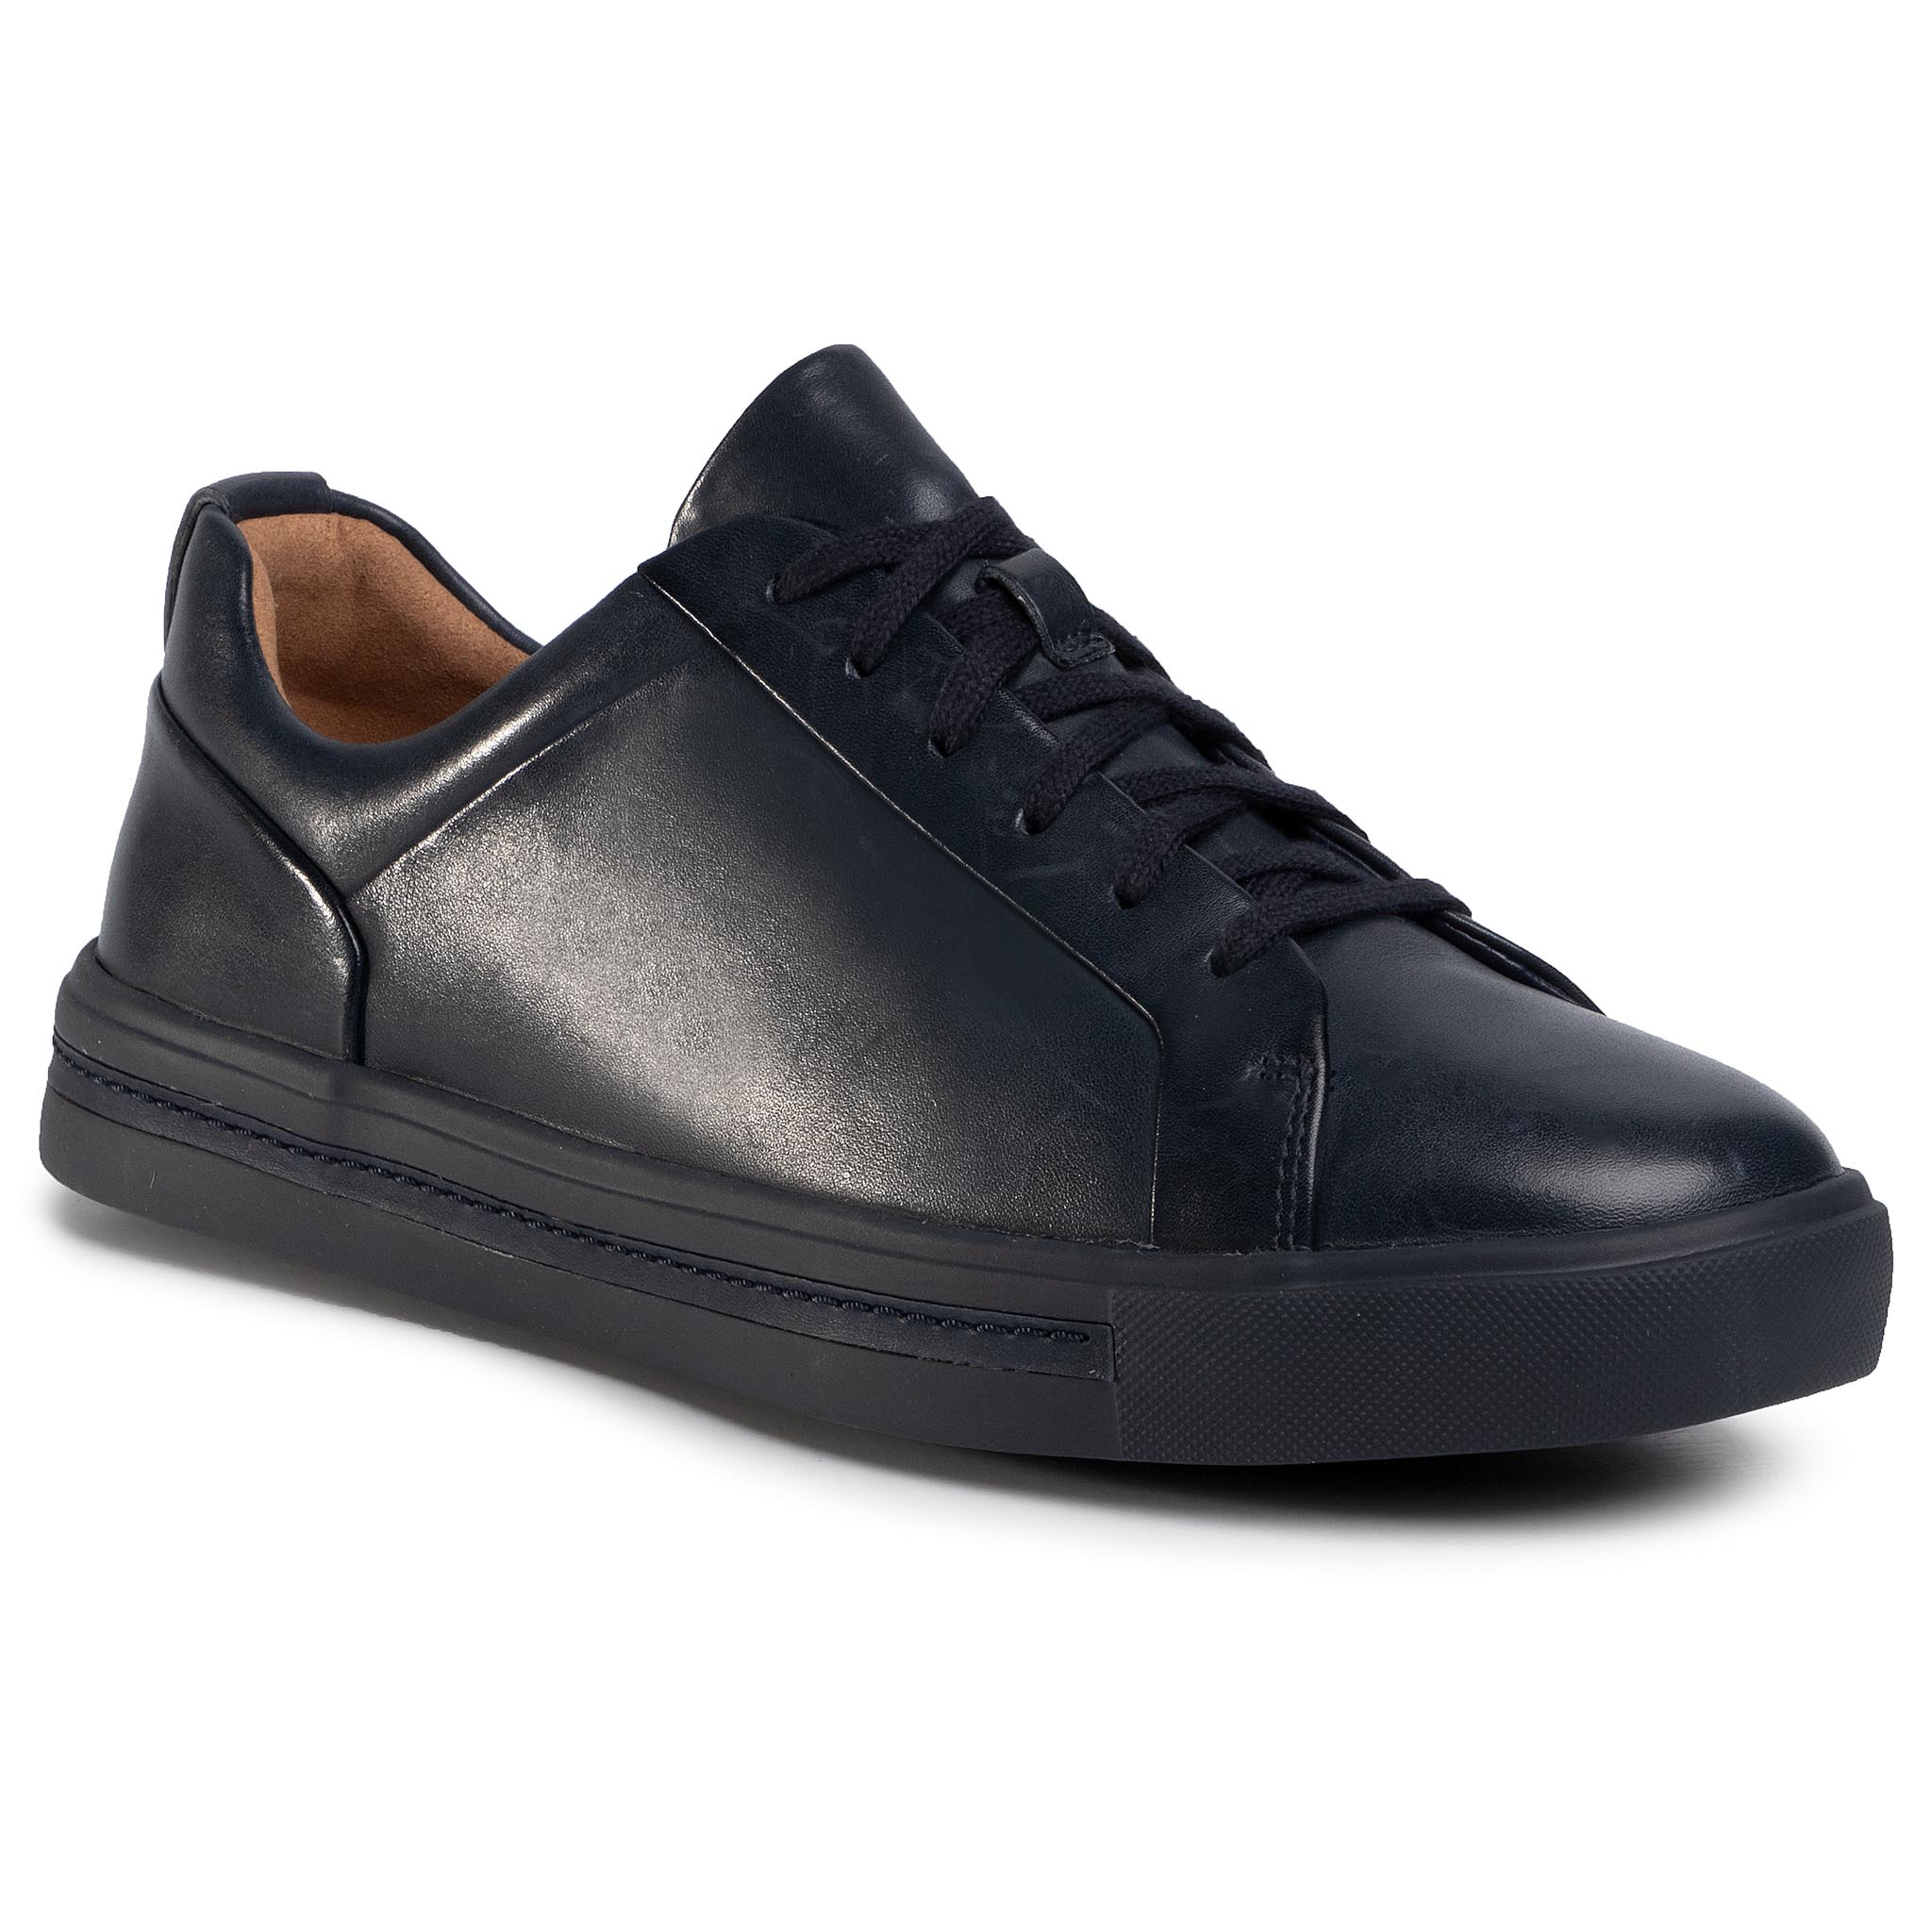 Sneakers CLARKS - Un Maui Lace 261449904 Navy Leather